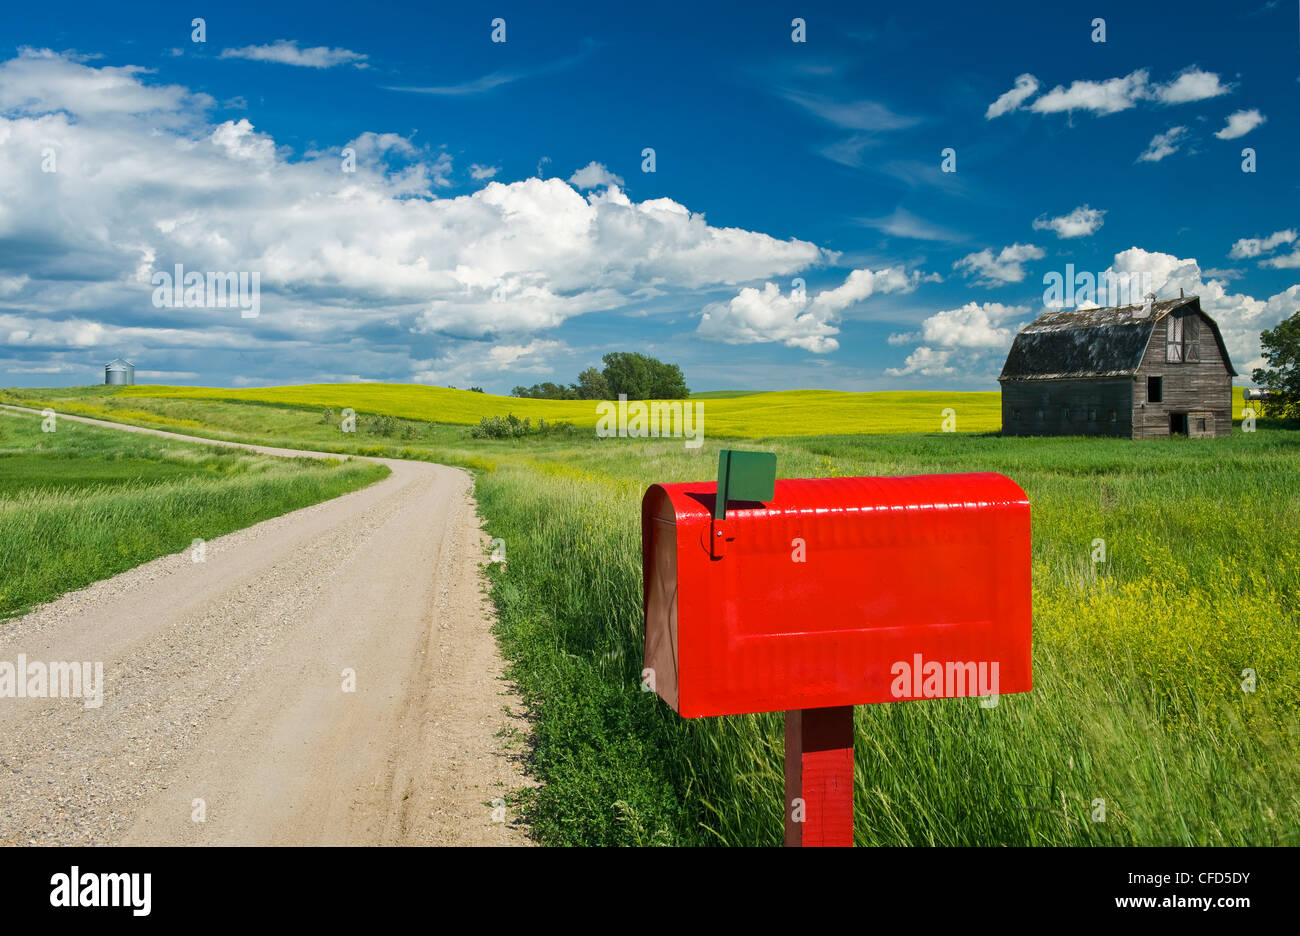 Mailbox along country road with old barn in the background, near Somerset, Manitoba, Canada, Stock Photo